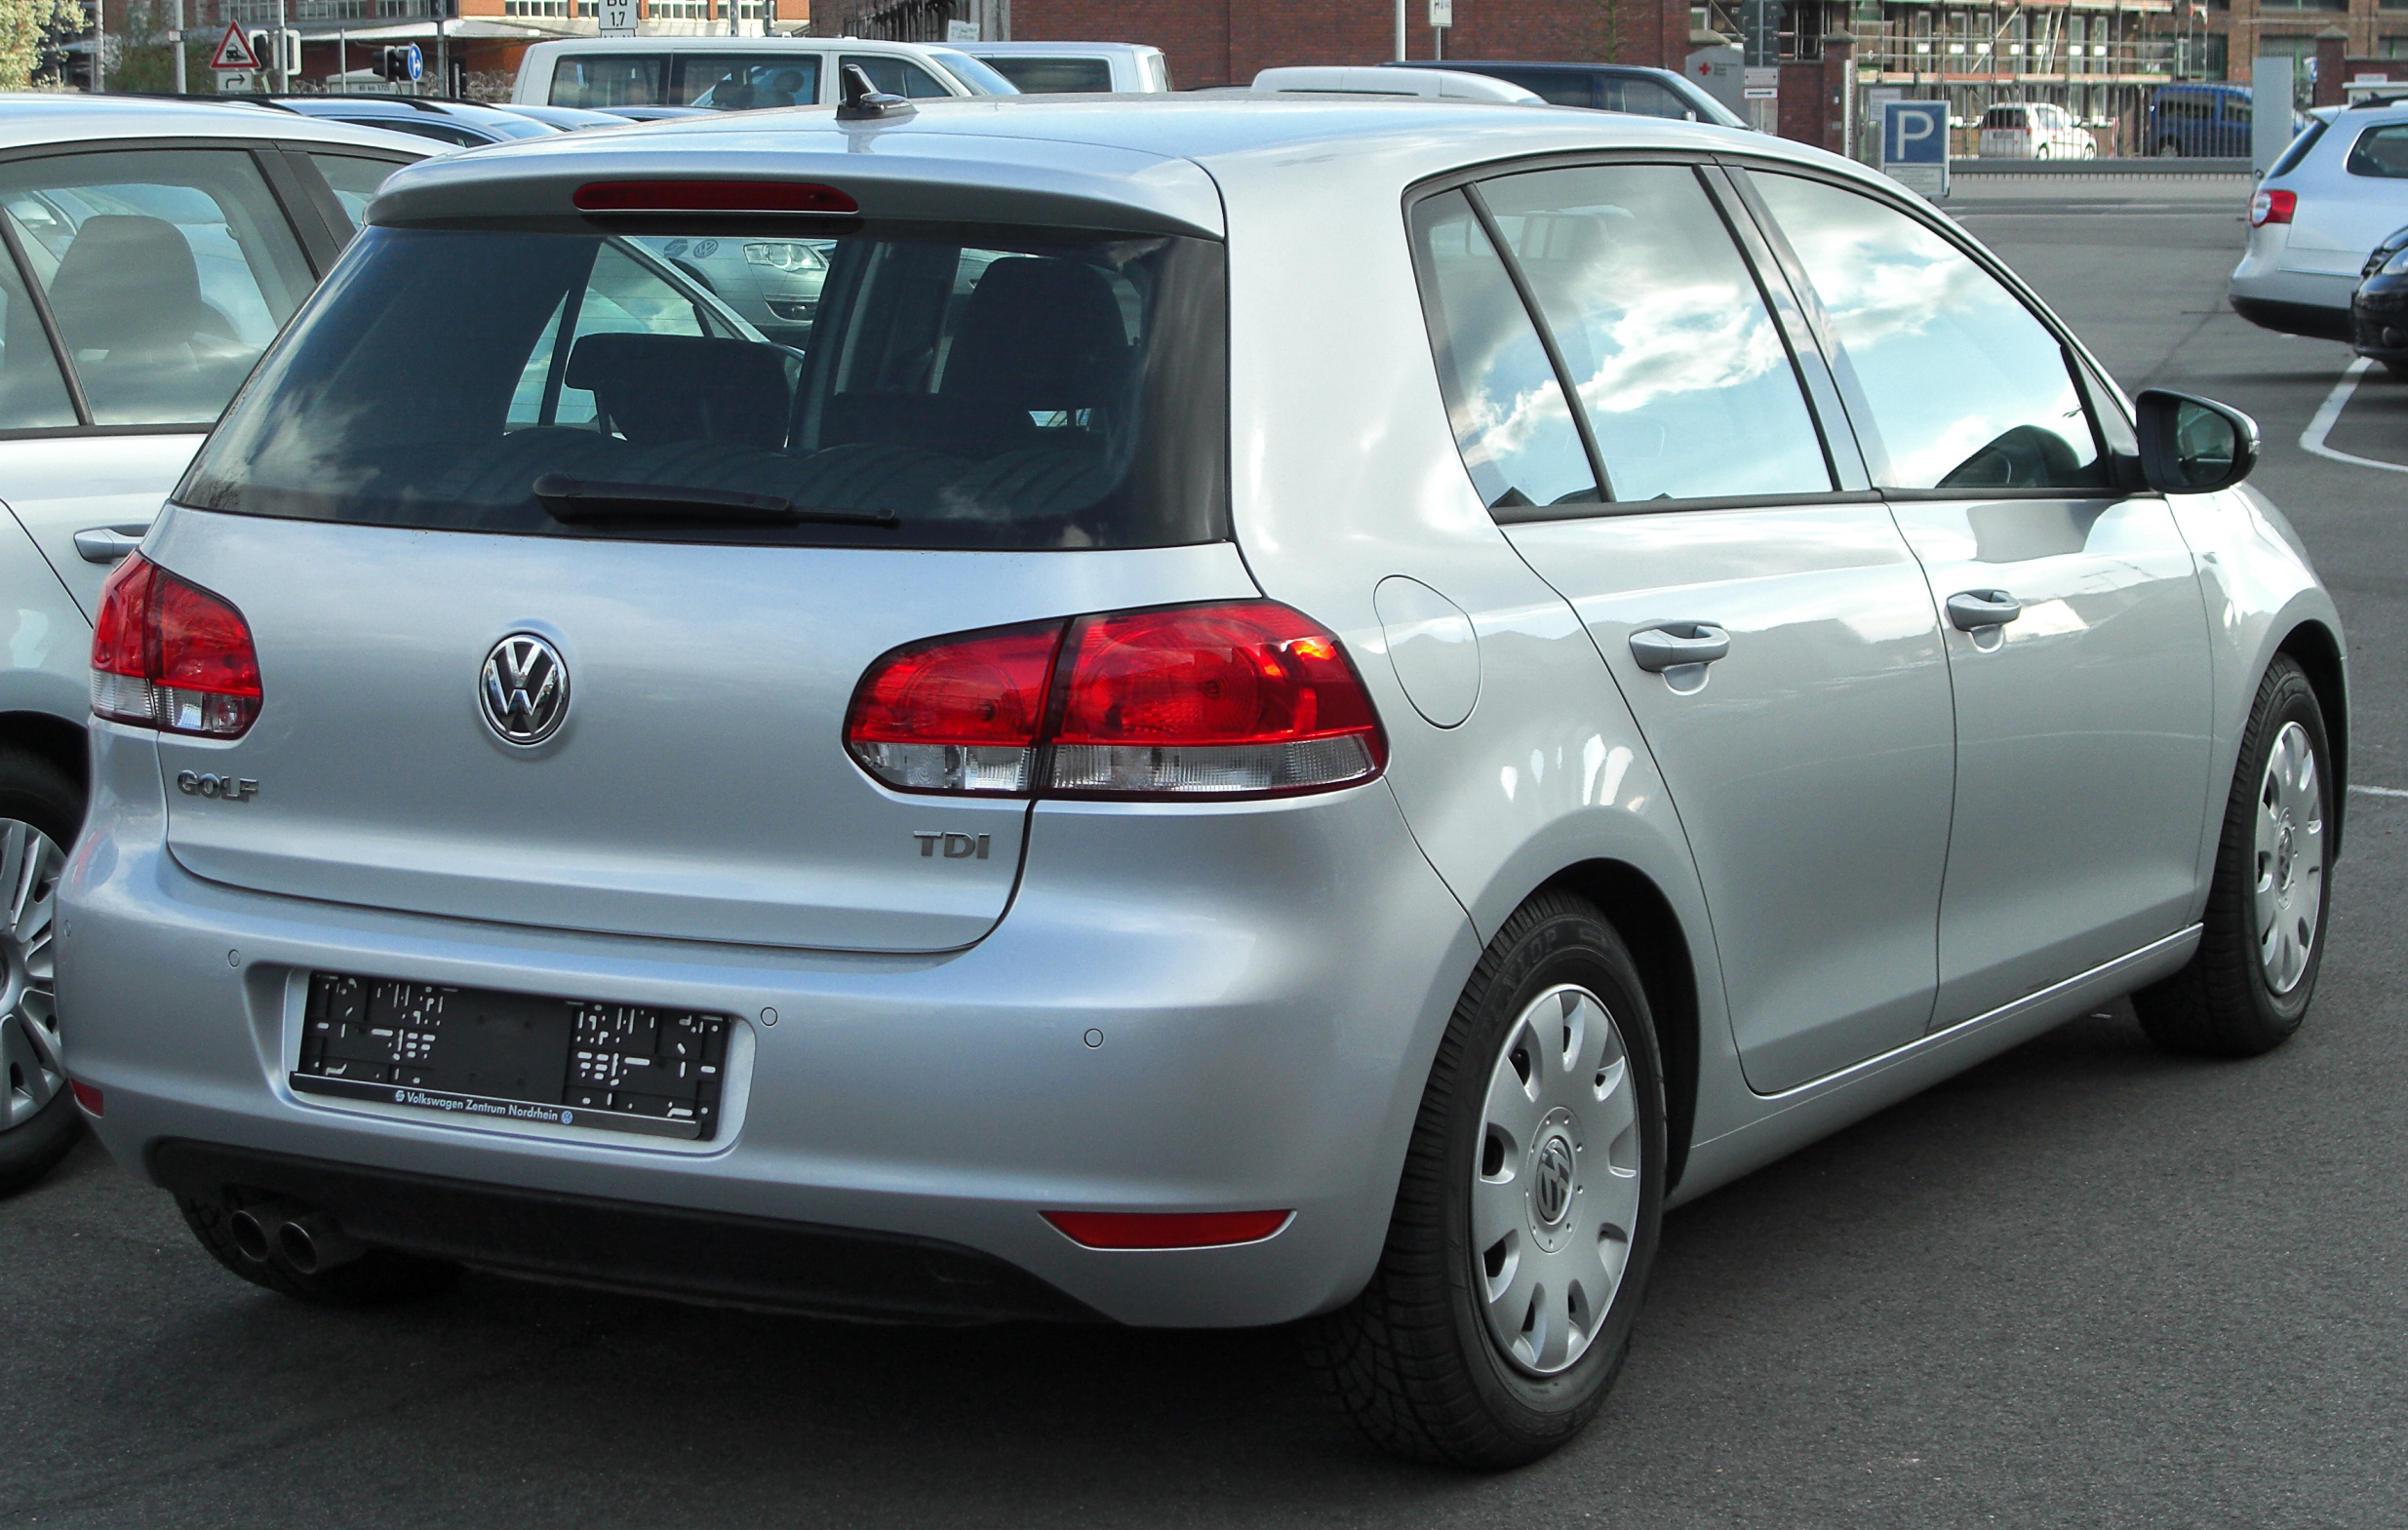 file vw golf vi tdi rear wikimedia commons. Black Bedroom Furniture Sets. Home Design Ideas